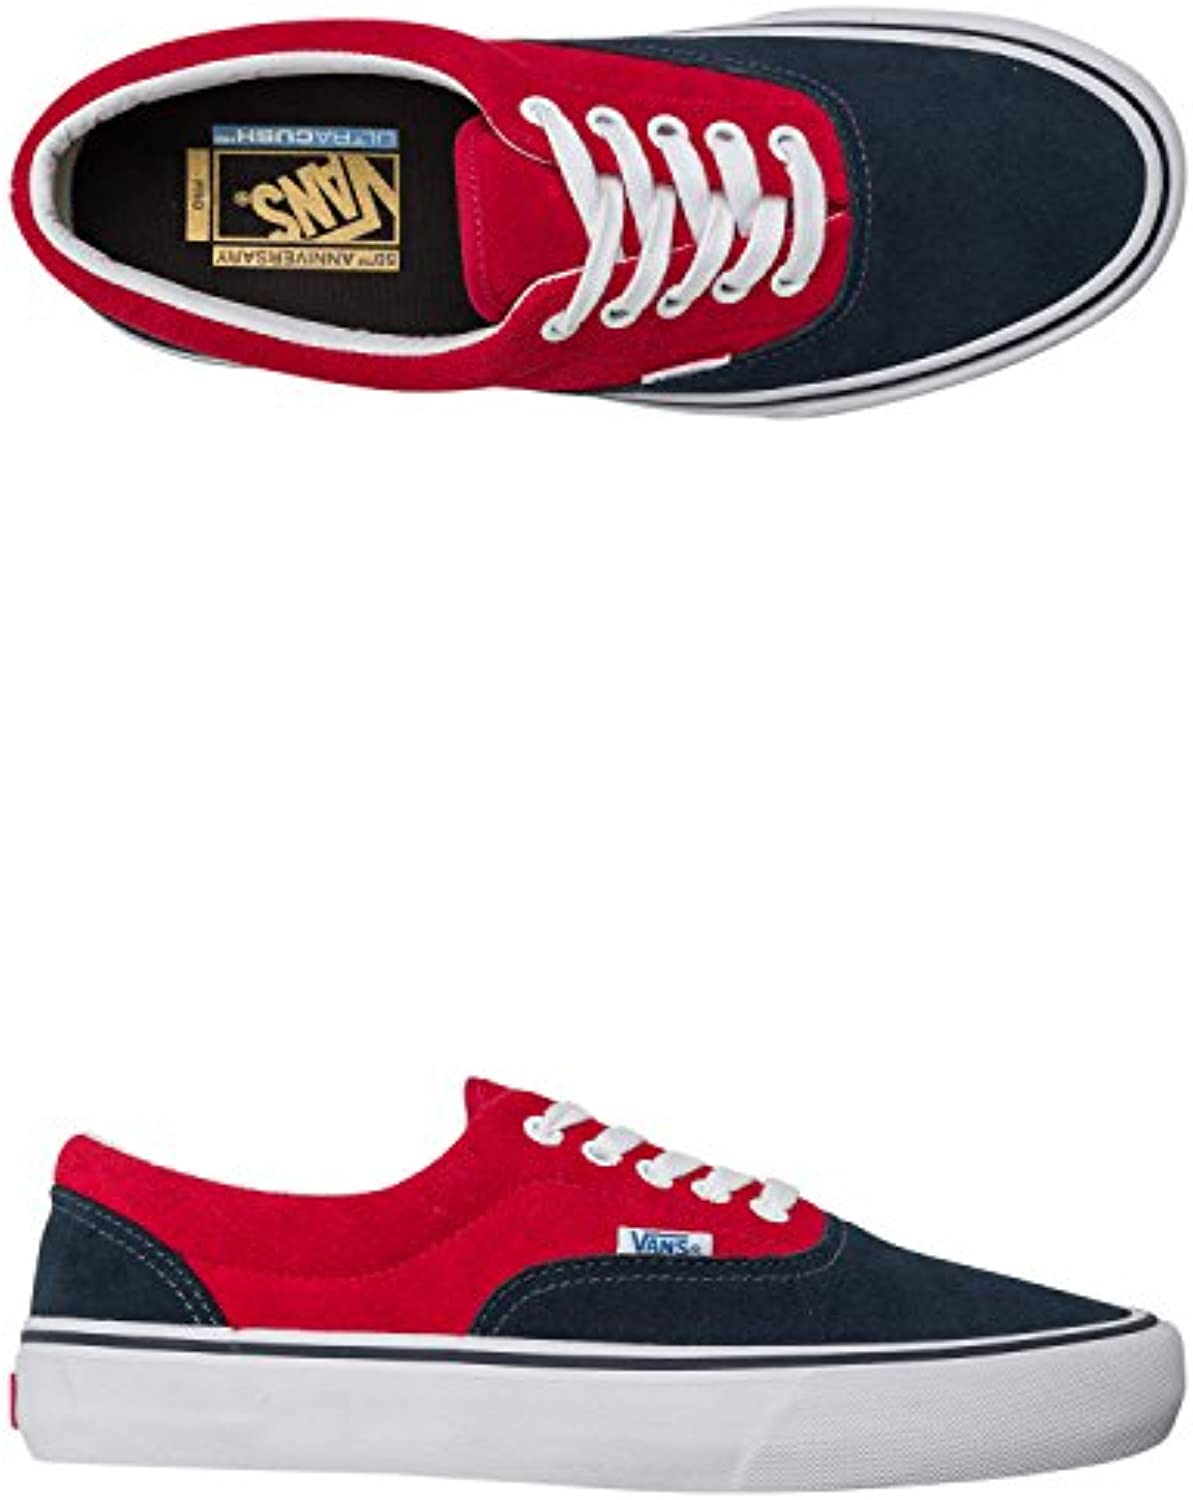 Vans Era Pro '76 50th Navy Blue/Red 9.5uk  -